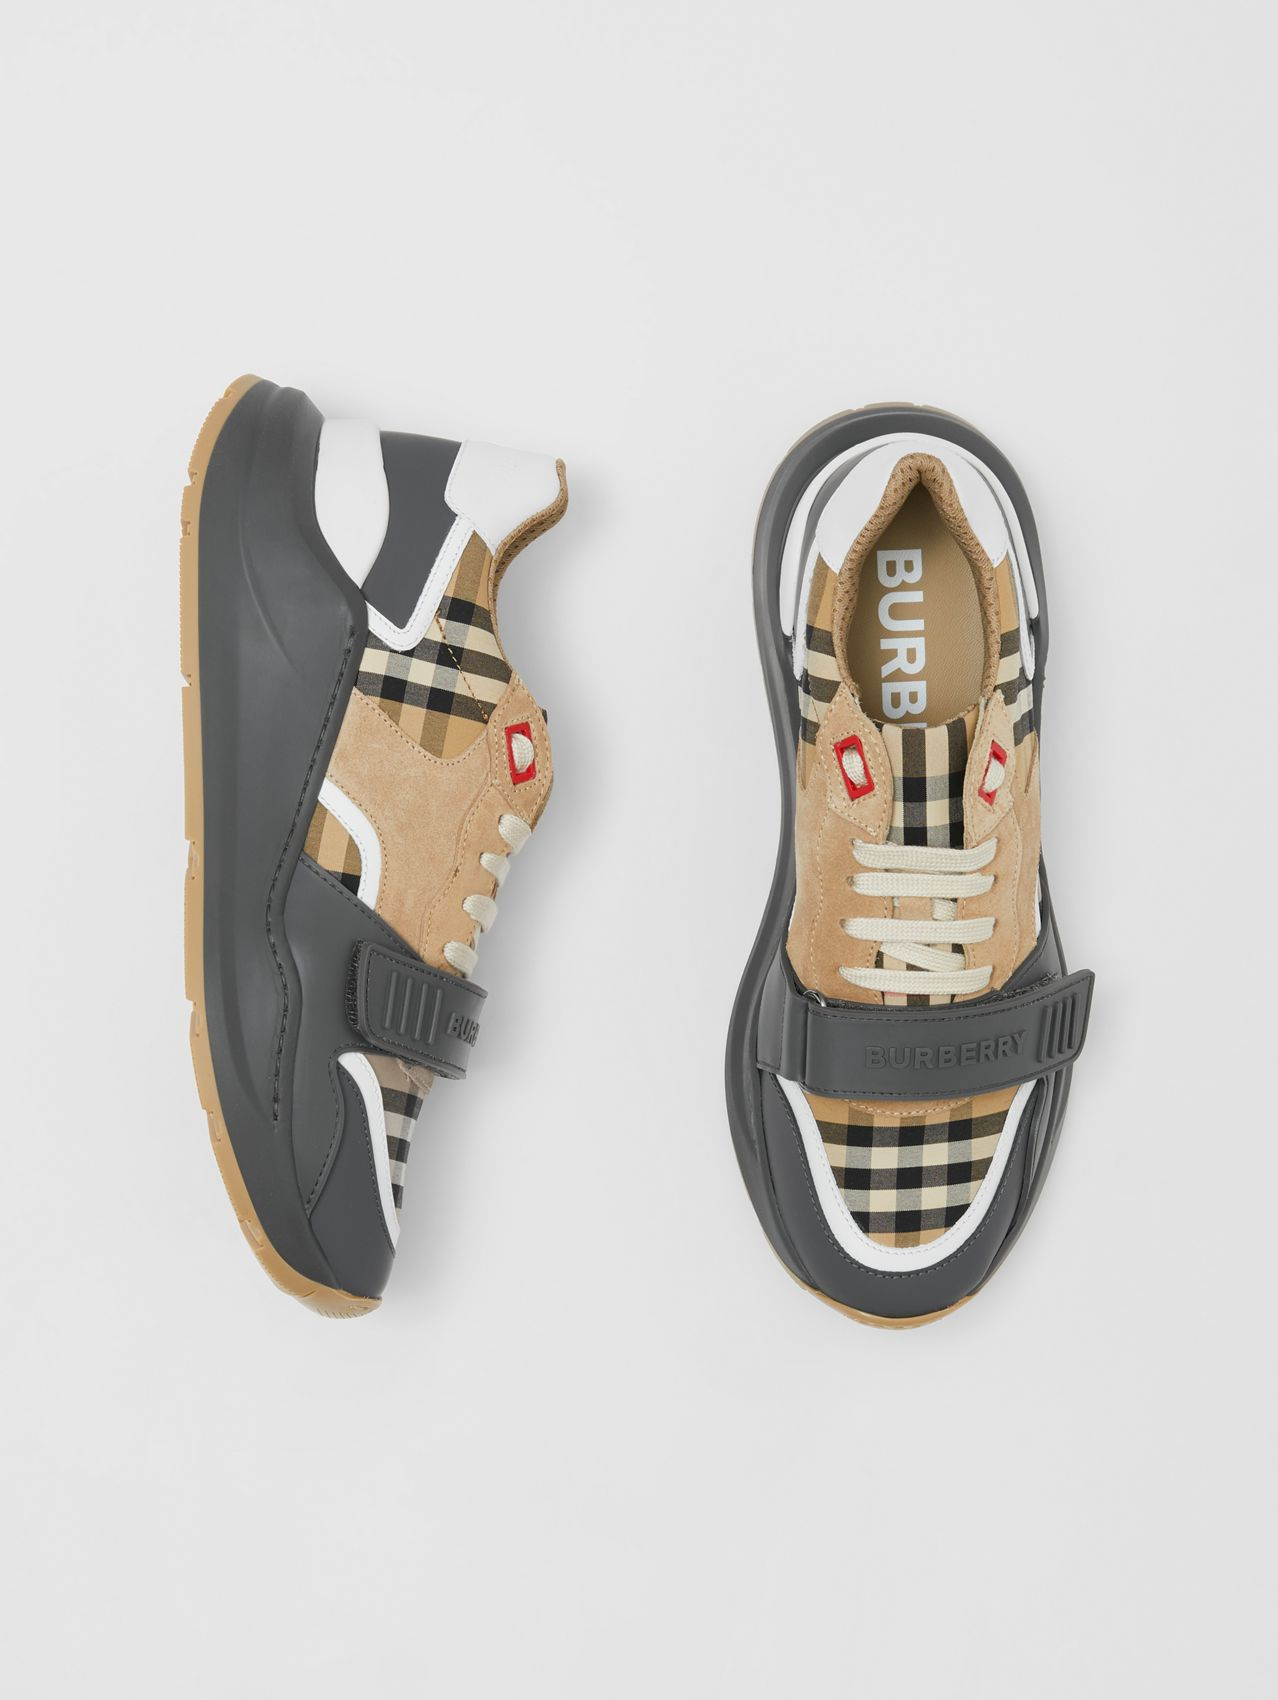 Vintage Check, Suede and Leather Sneakers (Grey/archive Beige)